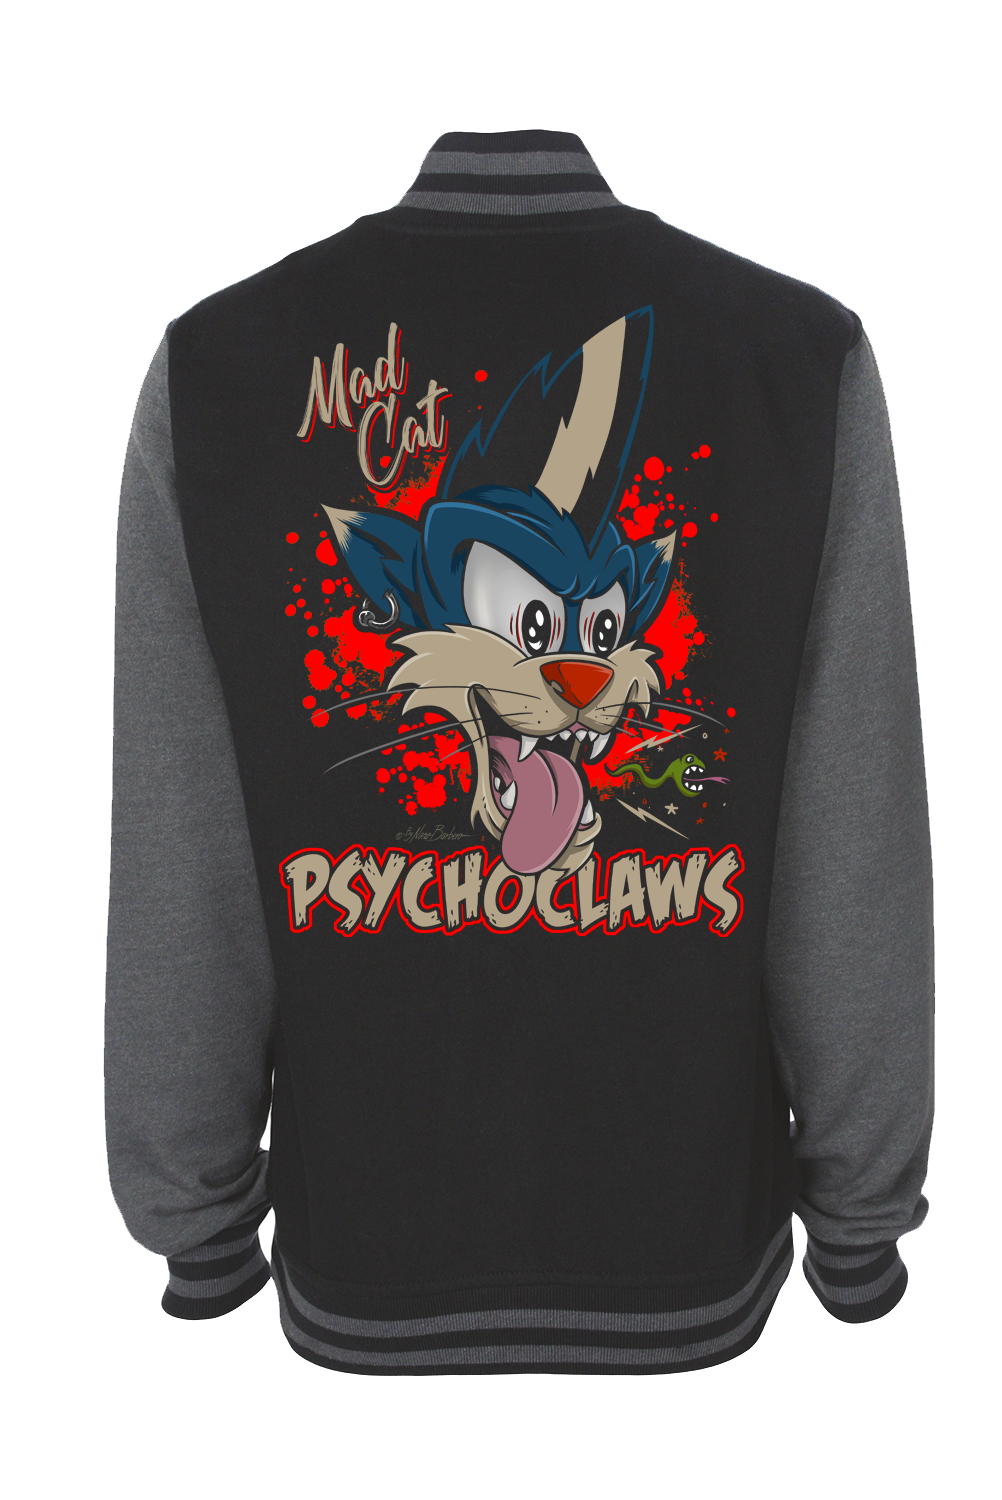 PSYCHO CLAWS VARSITY JACKET UNISEX BY NANO BARBERO